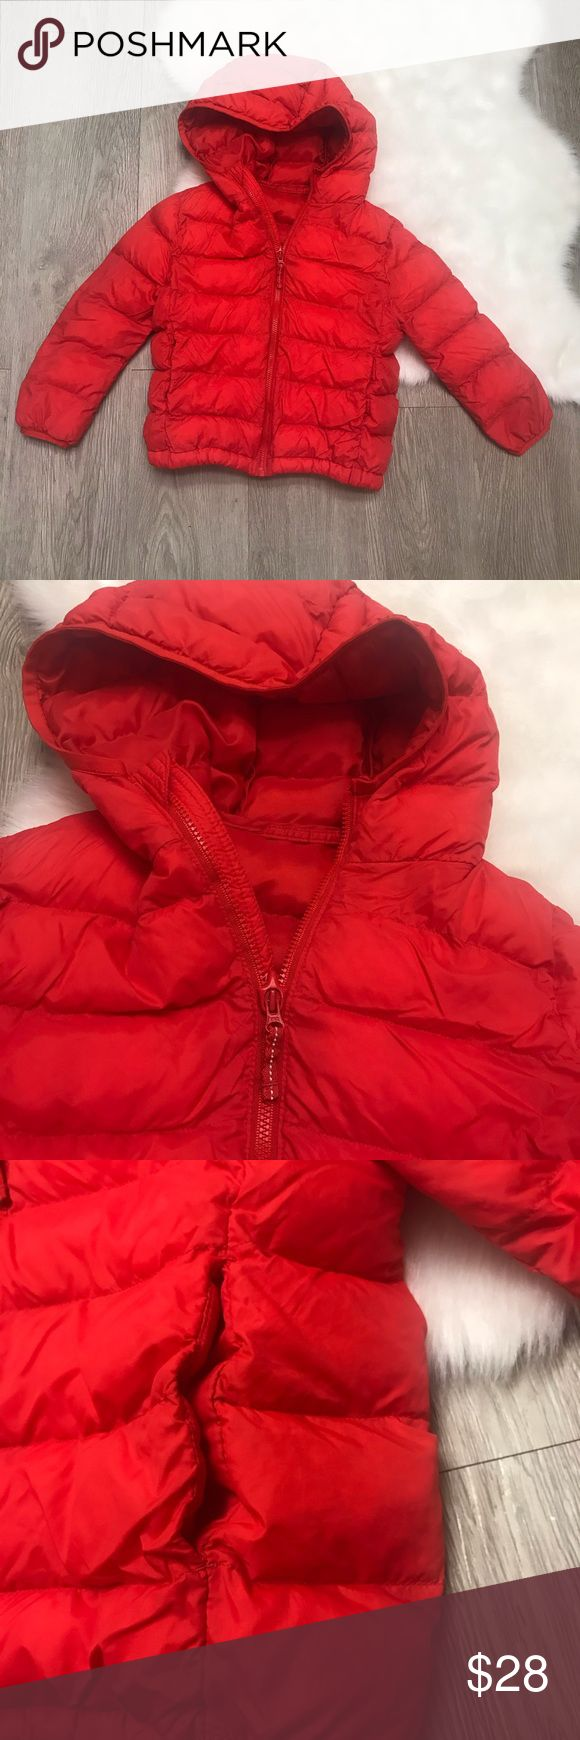 Uniqlo kids red puffer hooded jacket in 2020 Hooded